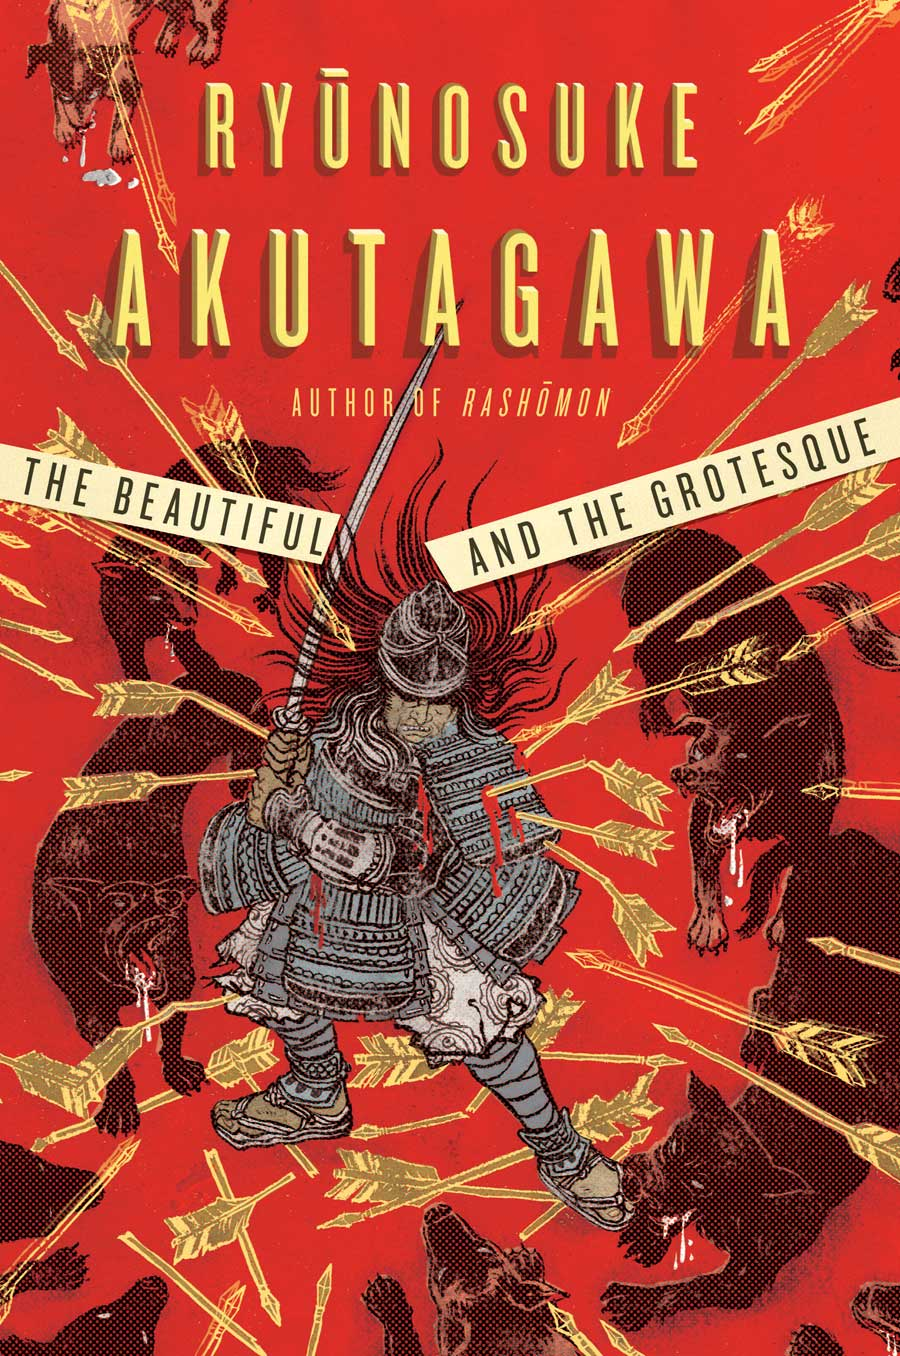 Yuko Shimizu - The Beautiful and the Grotesque book cover - yuko shimizu akutagawa